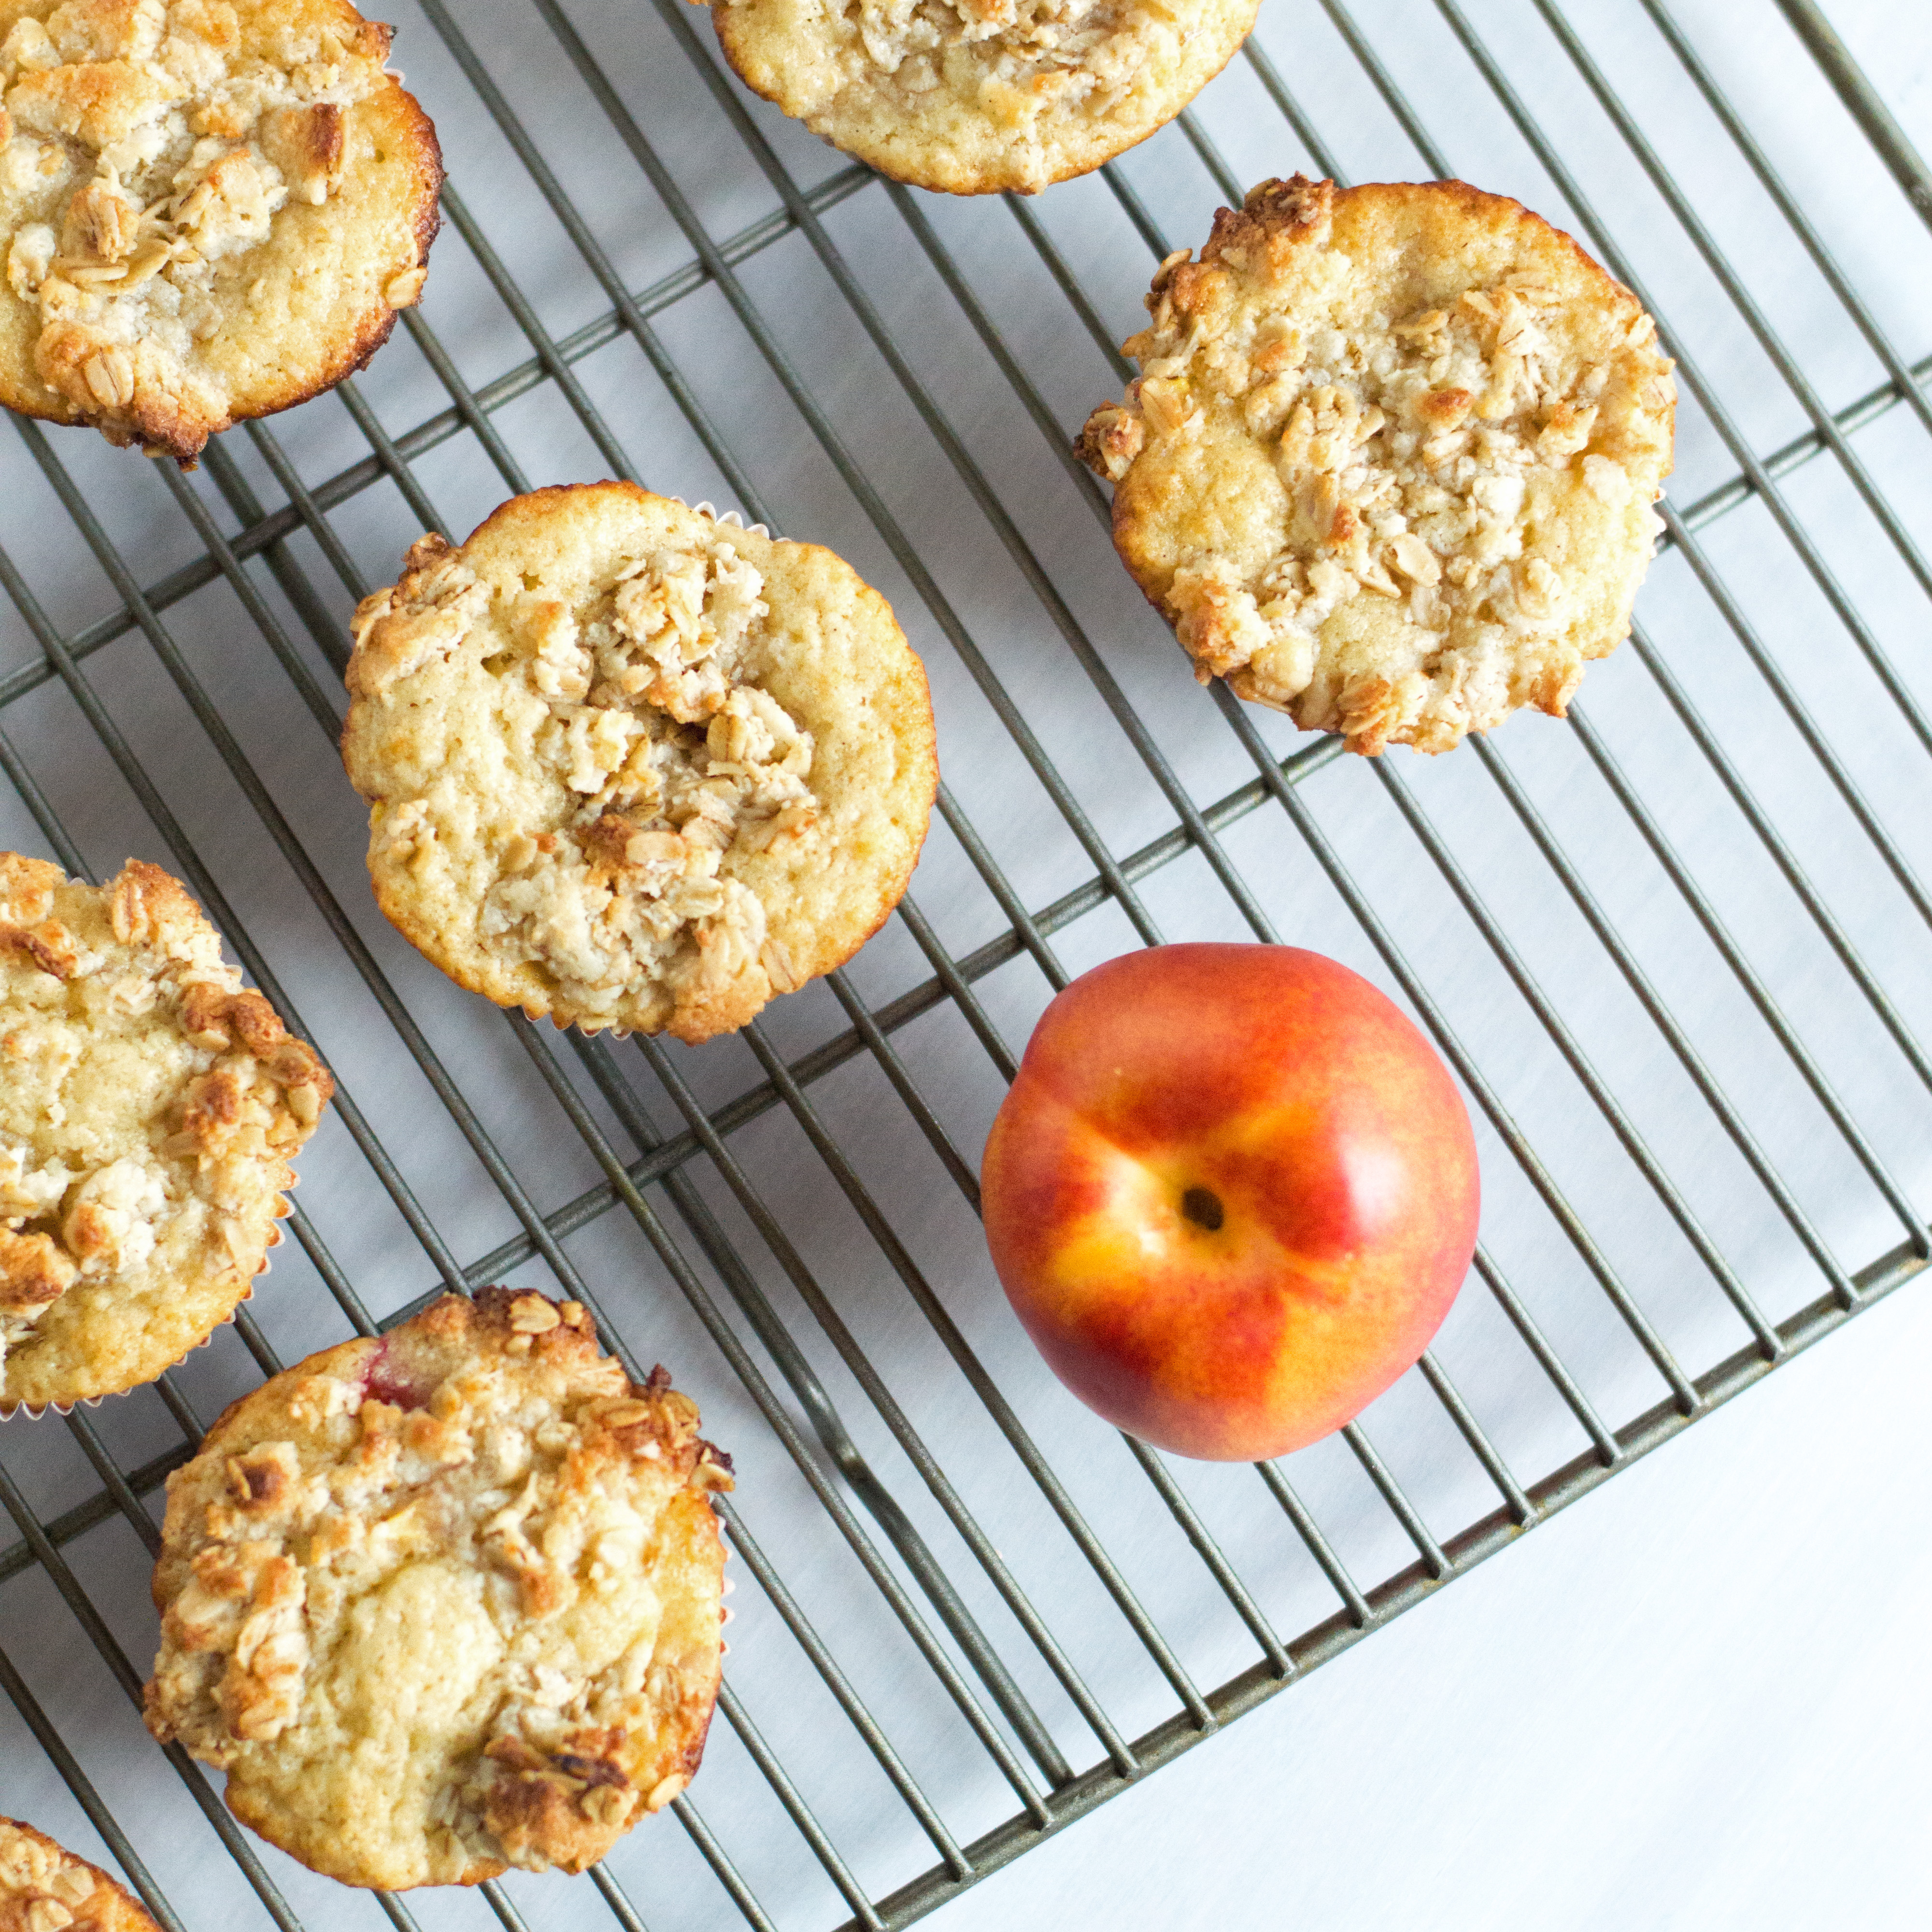 Nectarine and Almond Crumb Muffins